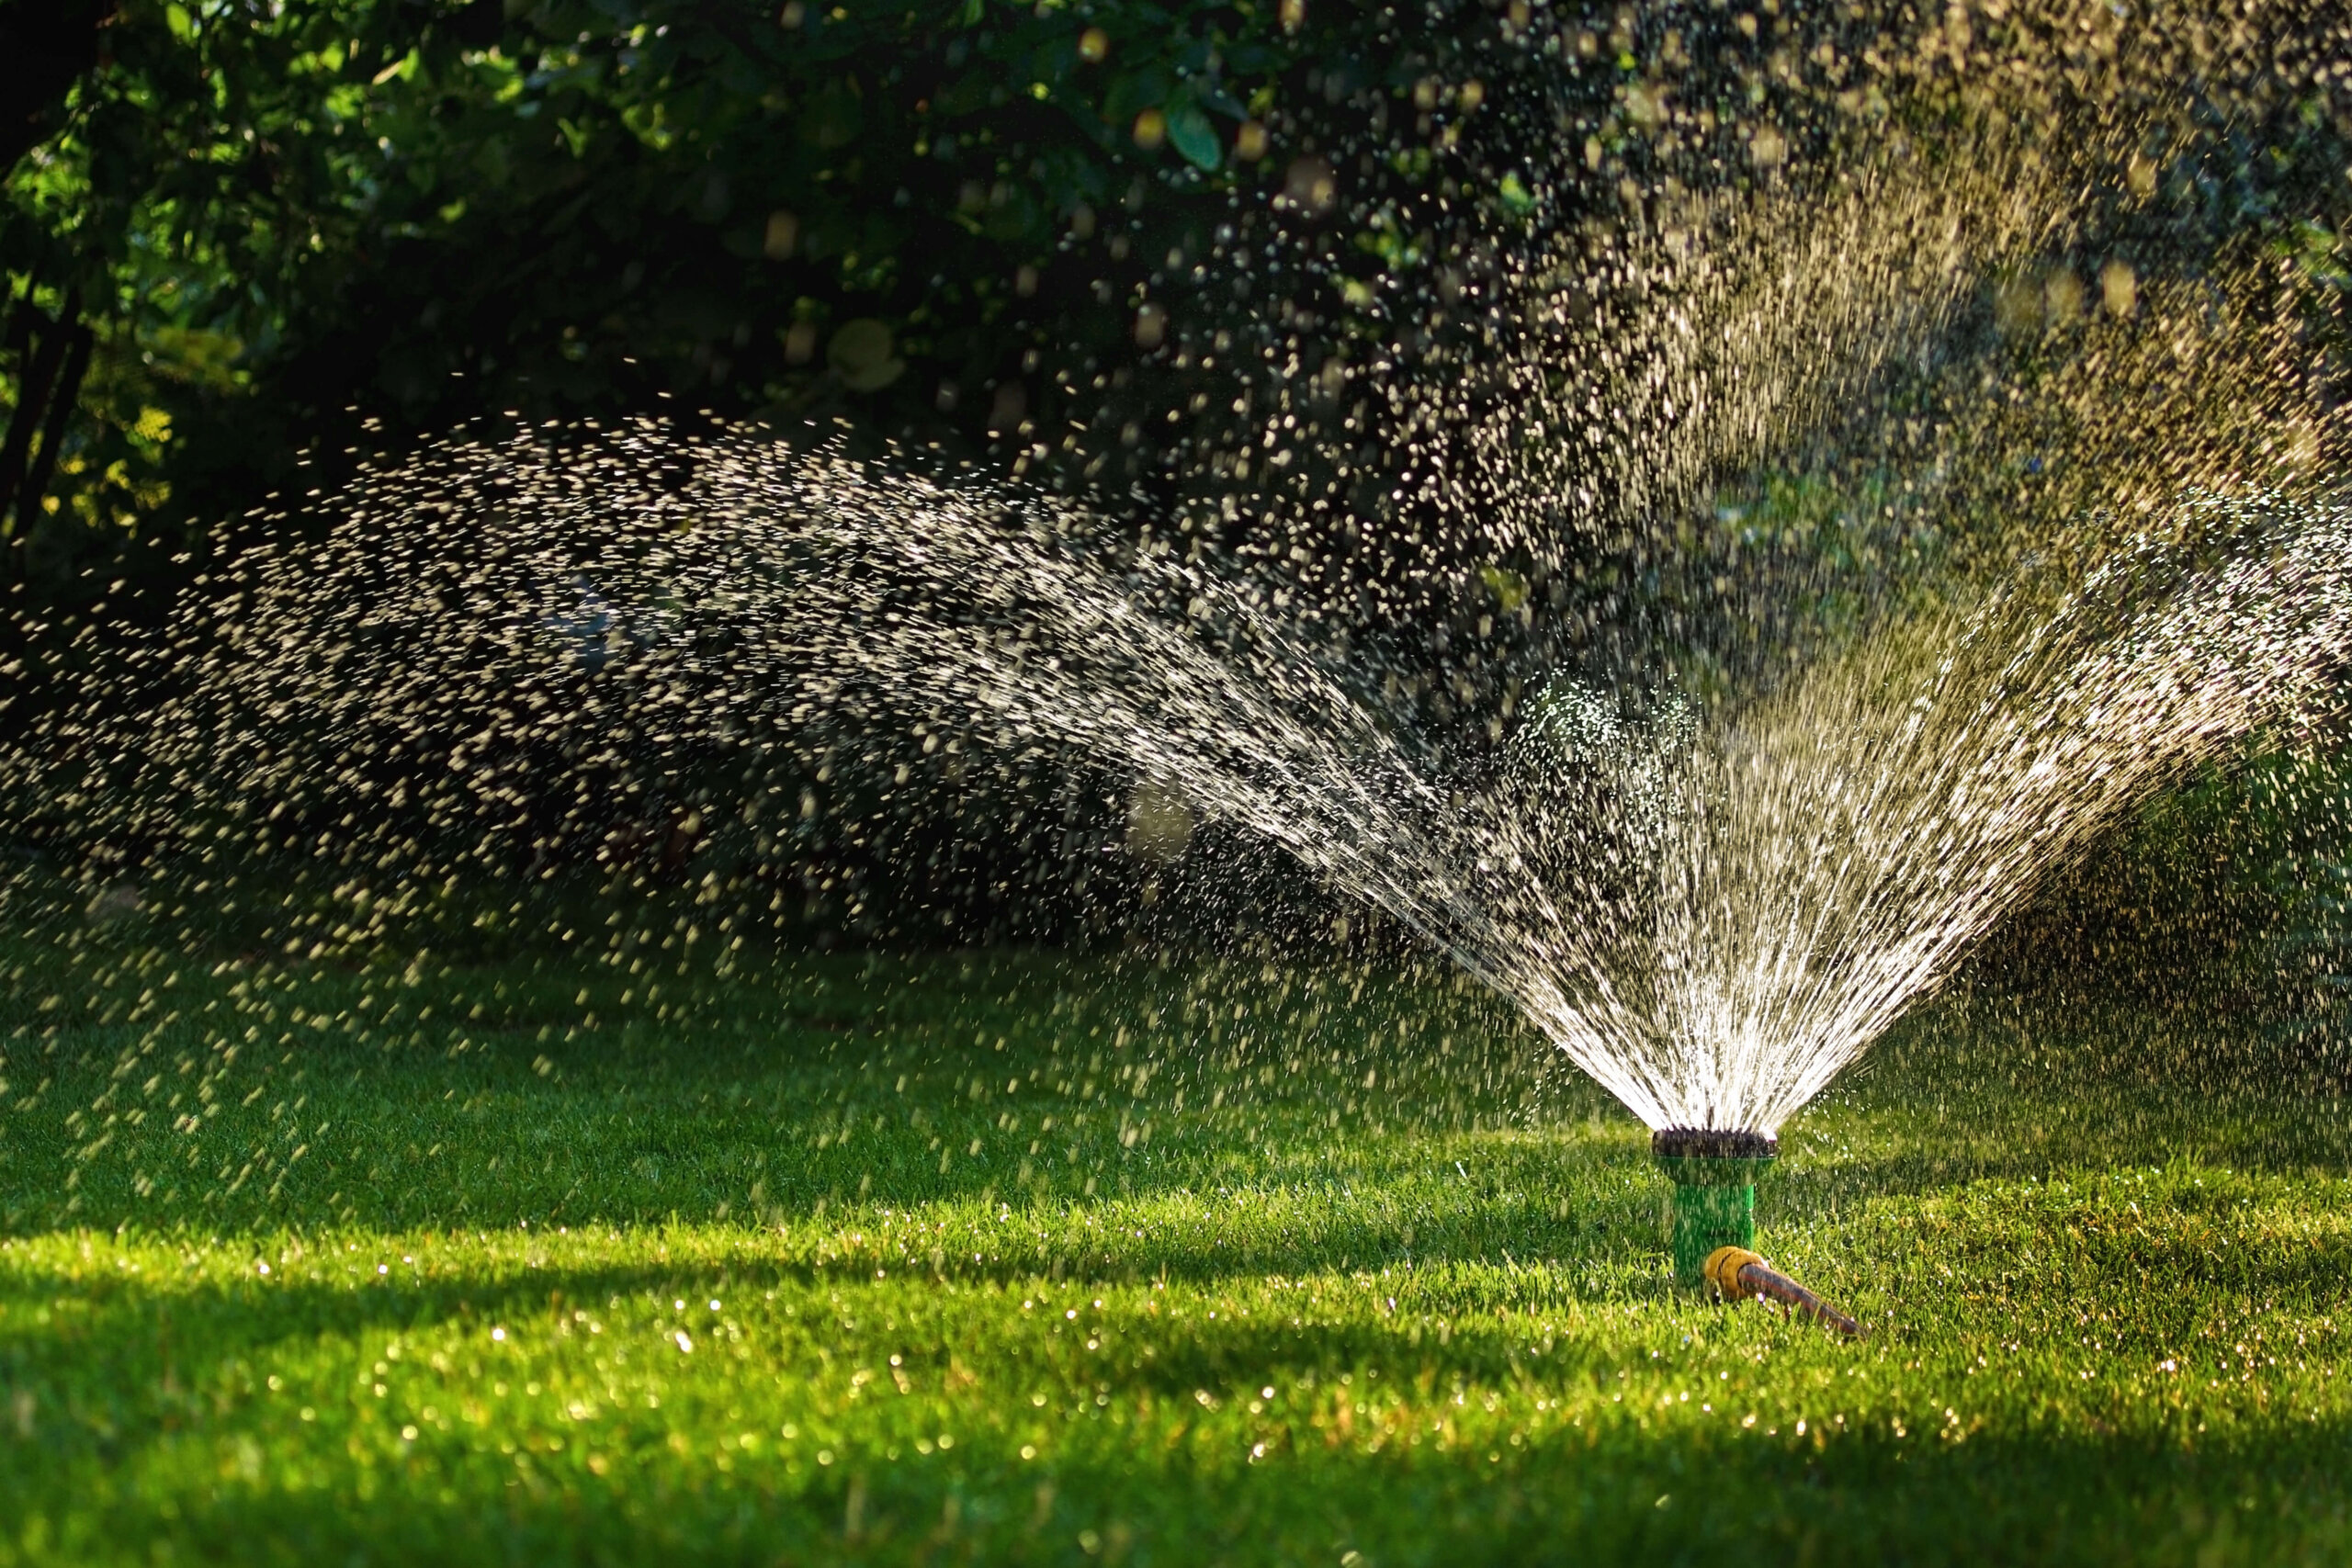 Grass Sprinkler in Action. Irrigation system - device of watering in the garden. Lawn sprinkler on the Golf course - spraying water over green grass.